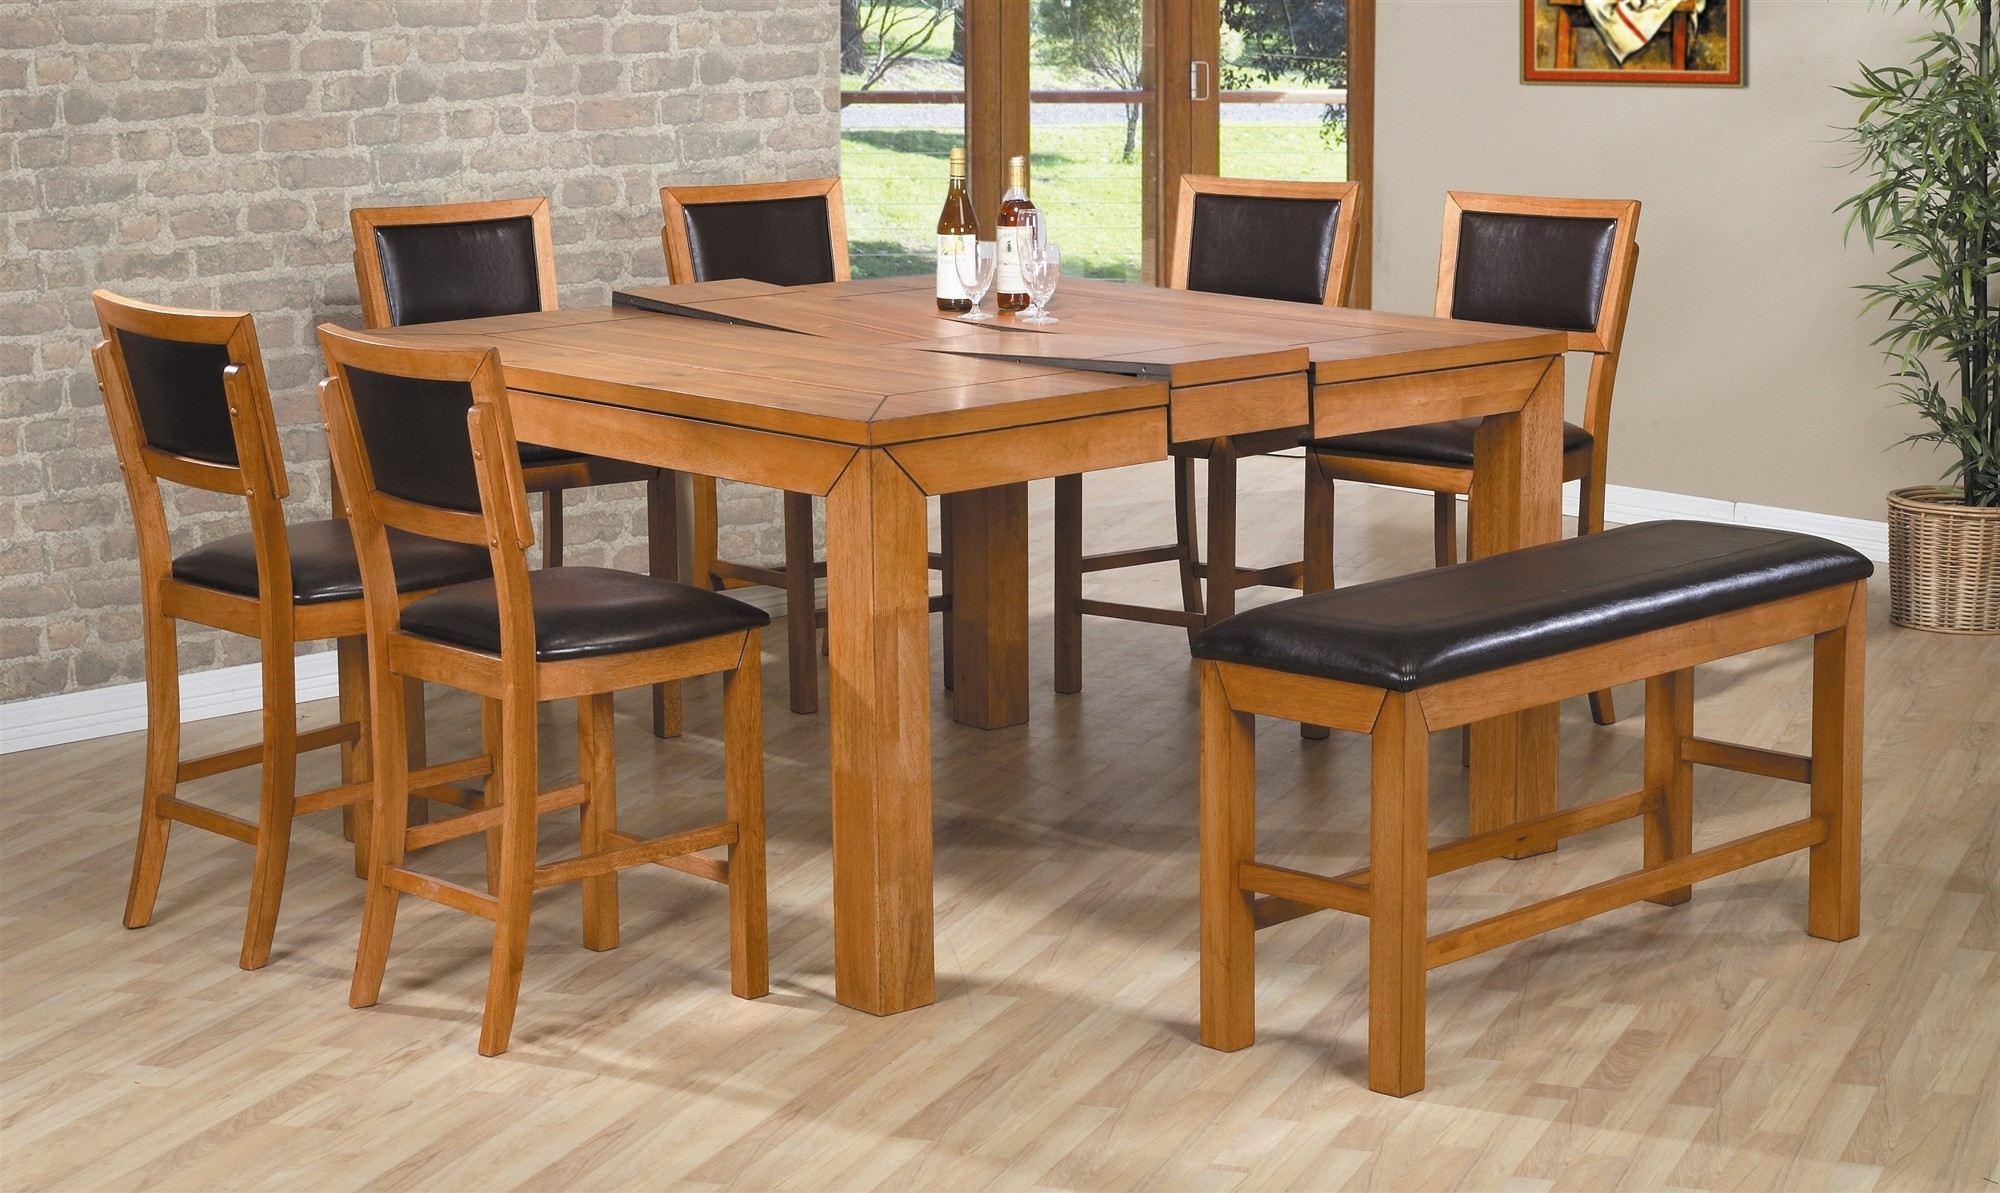 Fashionable Dining Room Table Seats 12 For Big Family (View 5 of 20)